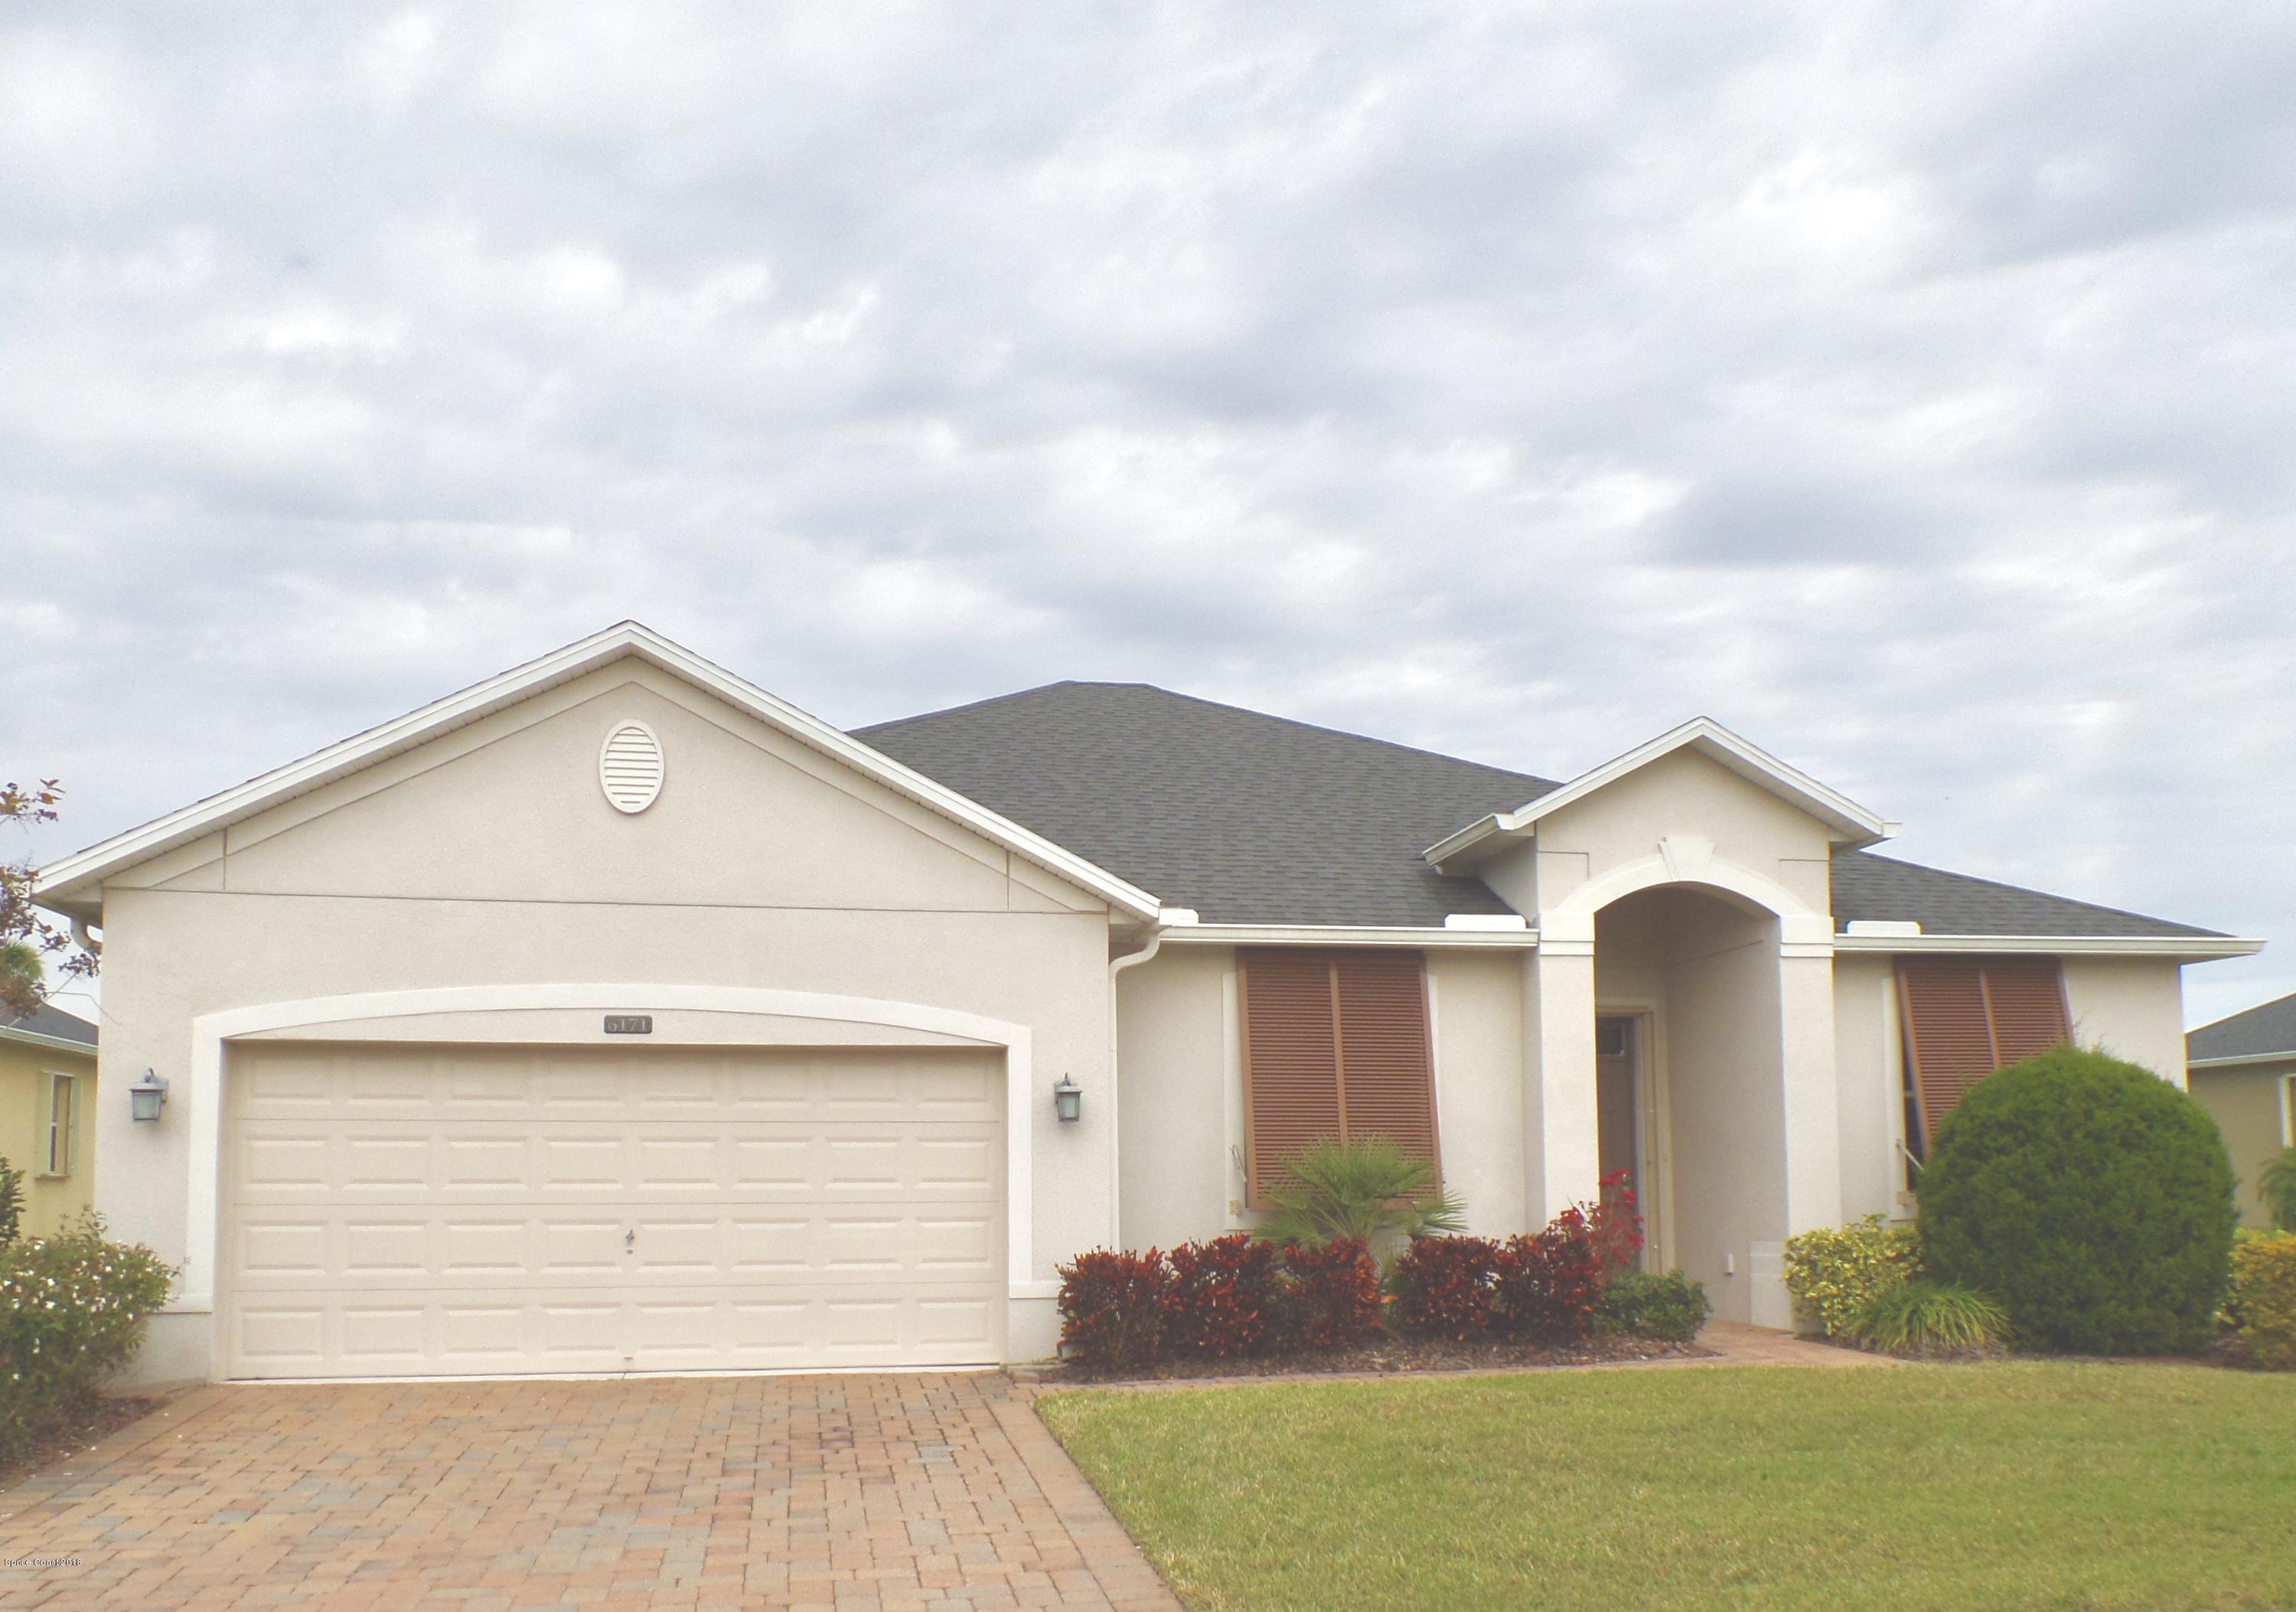 Single Family Home for Sale at 6171 Ingalls 6171 Ingalls Melbourne, Florida 32940 United States